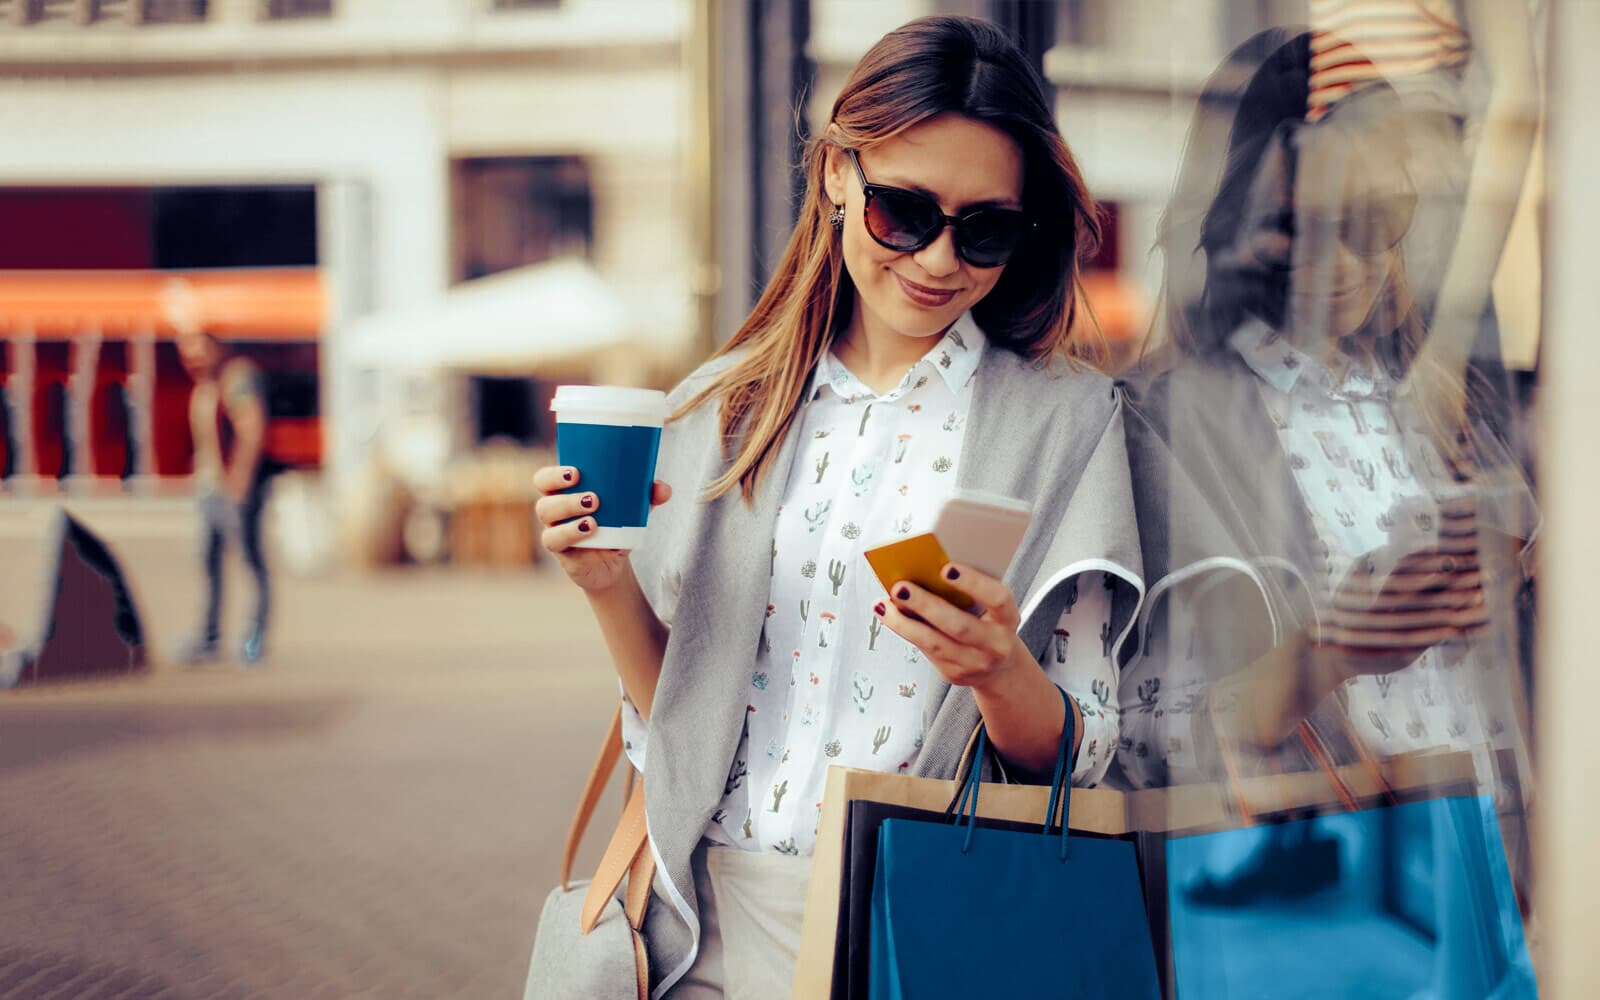 Woman on her phone, holding a to-go cup of coffee and shopping bags